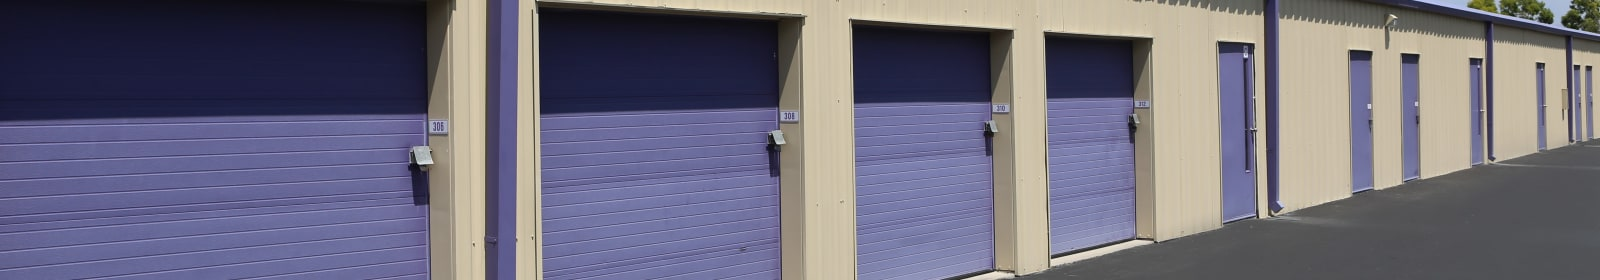 Features we offer at Midgard Self Storage in Murrells Inlet, South Carolina